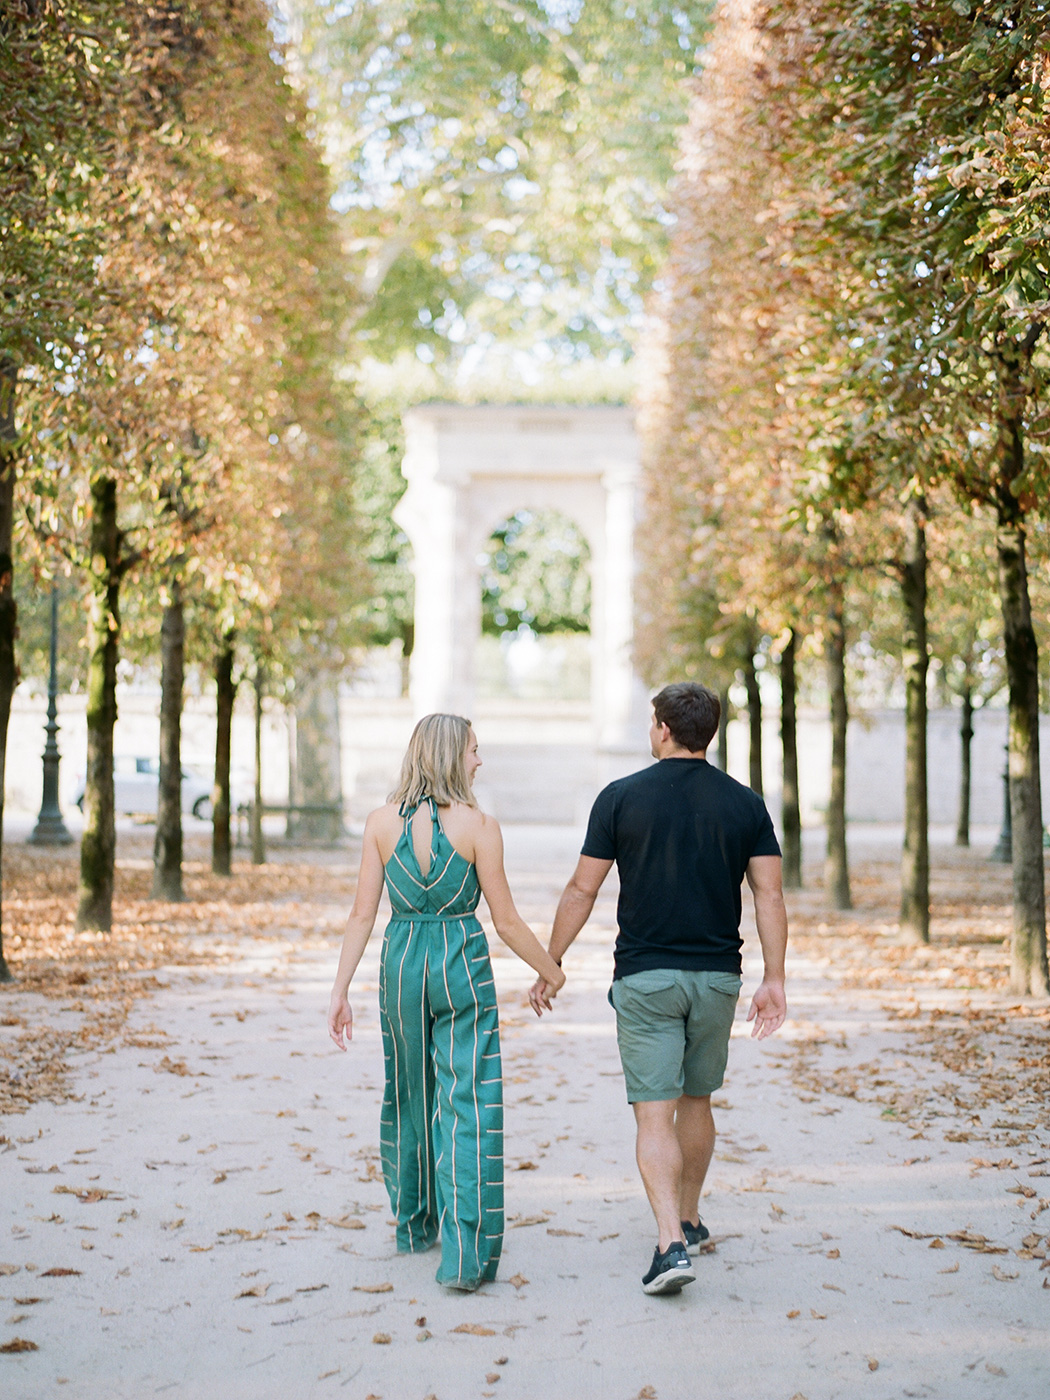 Paris Couple | Rensche Mari